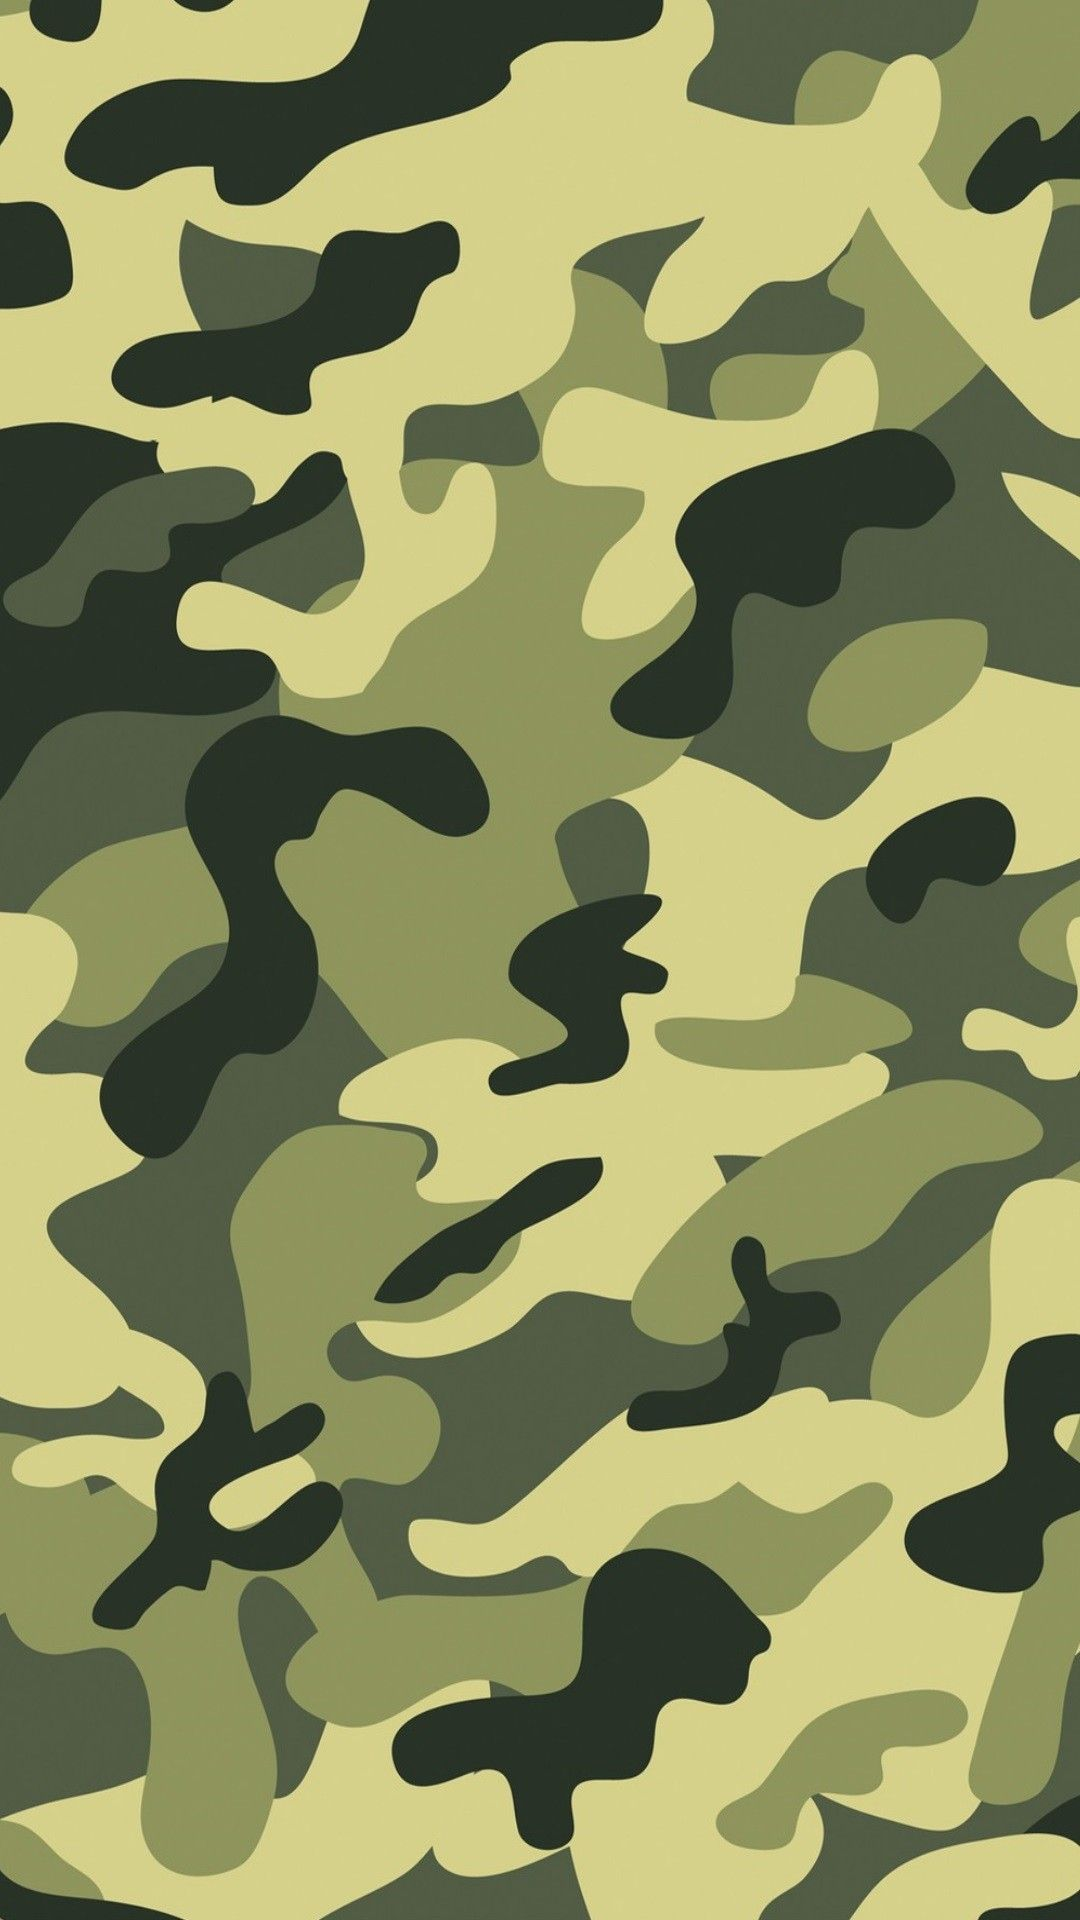 1080x1920 camouflage wallpaper for iphone or android tags camo hunting army backgrounds in - Hunting wallpaper for android ...